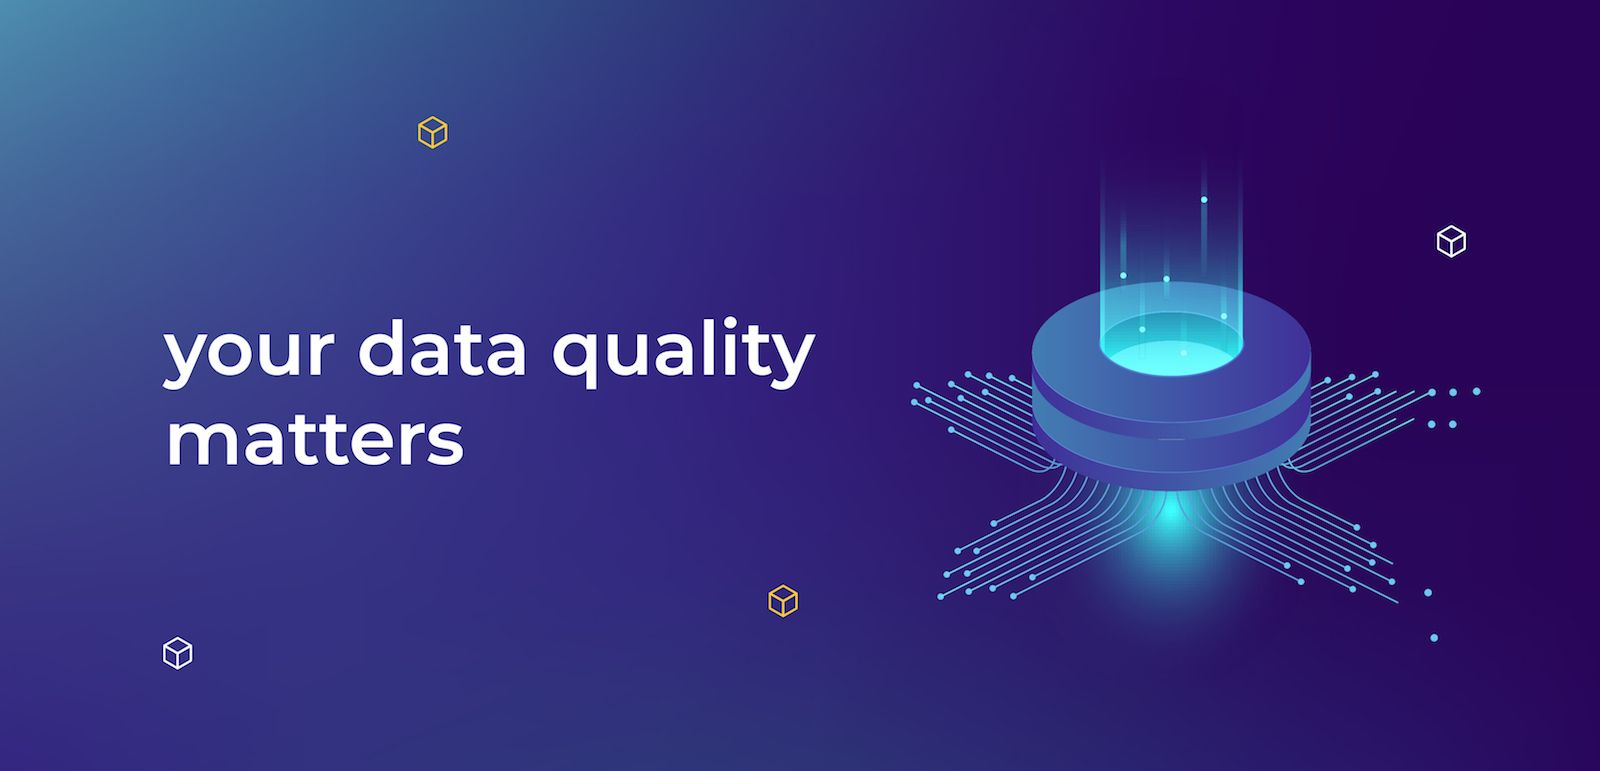 your data quality matters